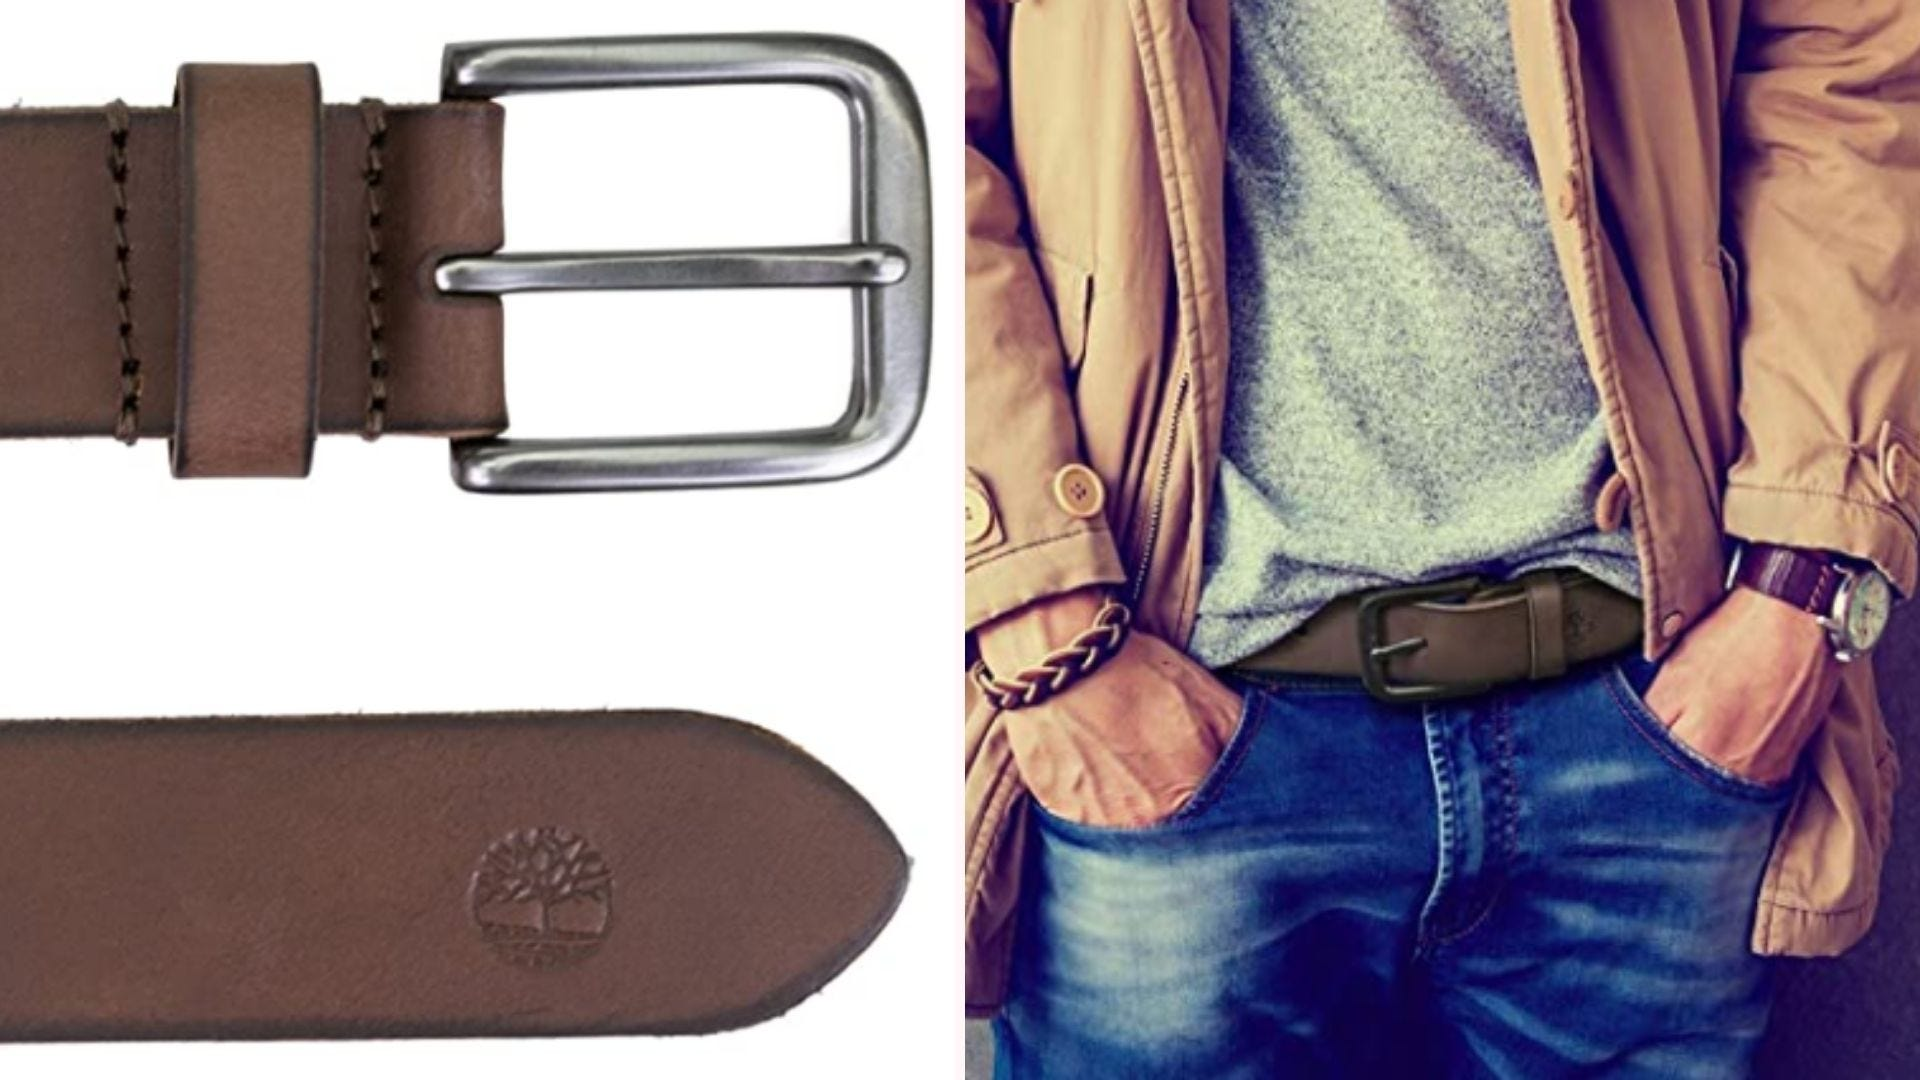 On the left, a closeup view of the leather belt's dark brown surface, gunmetal buckle, and the Timberland logo embossed on its tail end. On the right, a model in a casual top and blue jeans wears the belt.